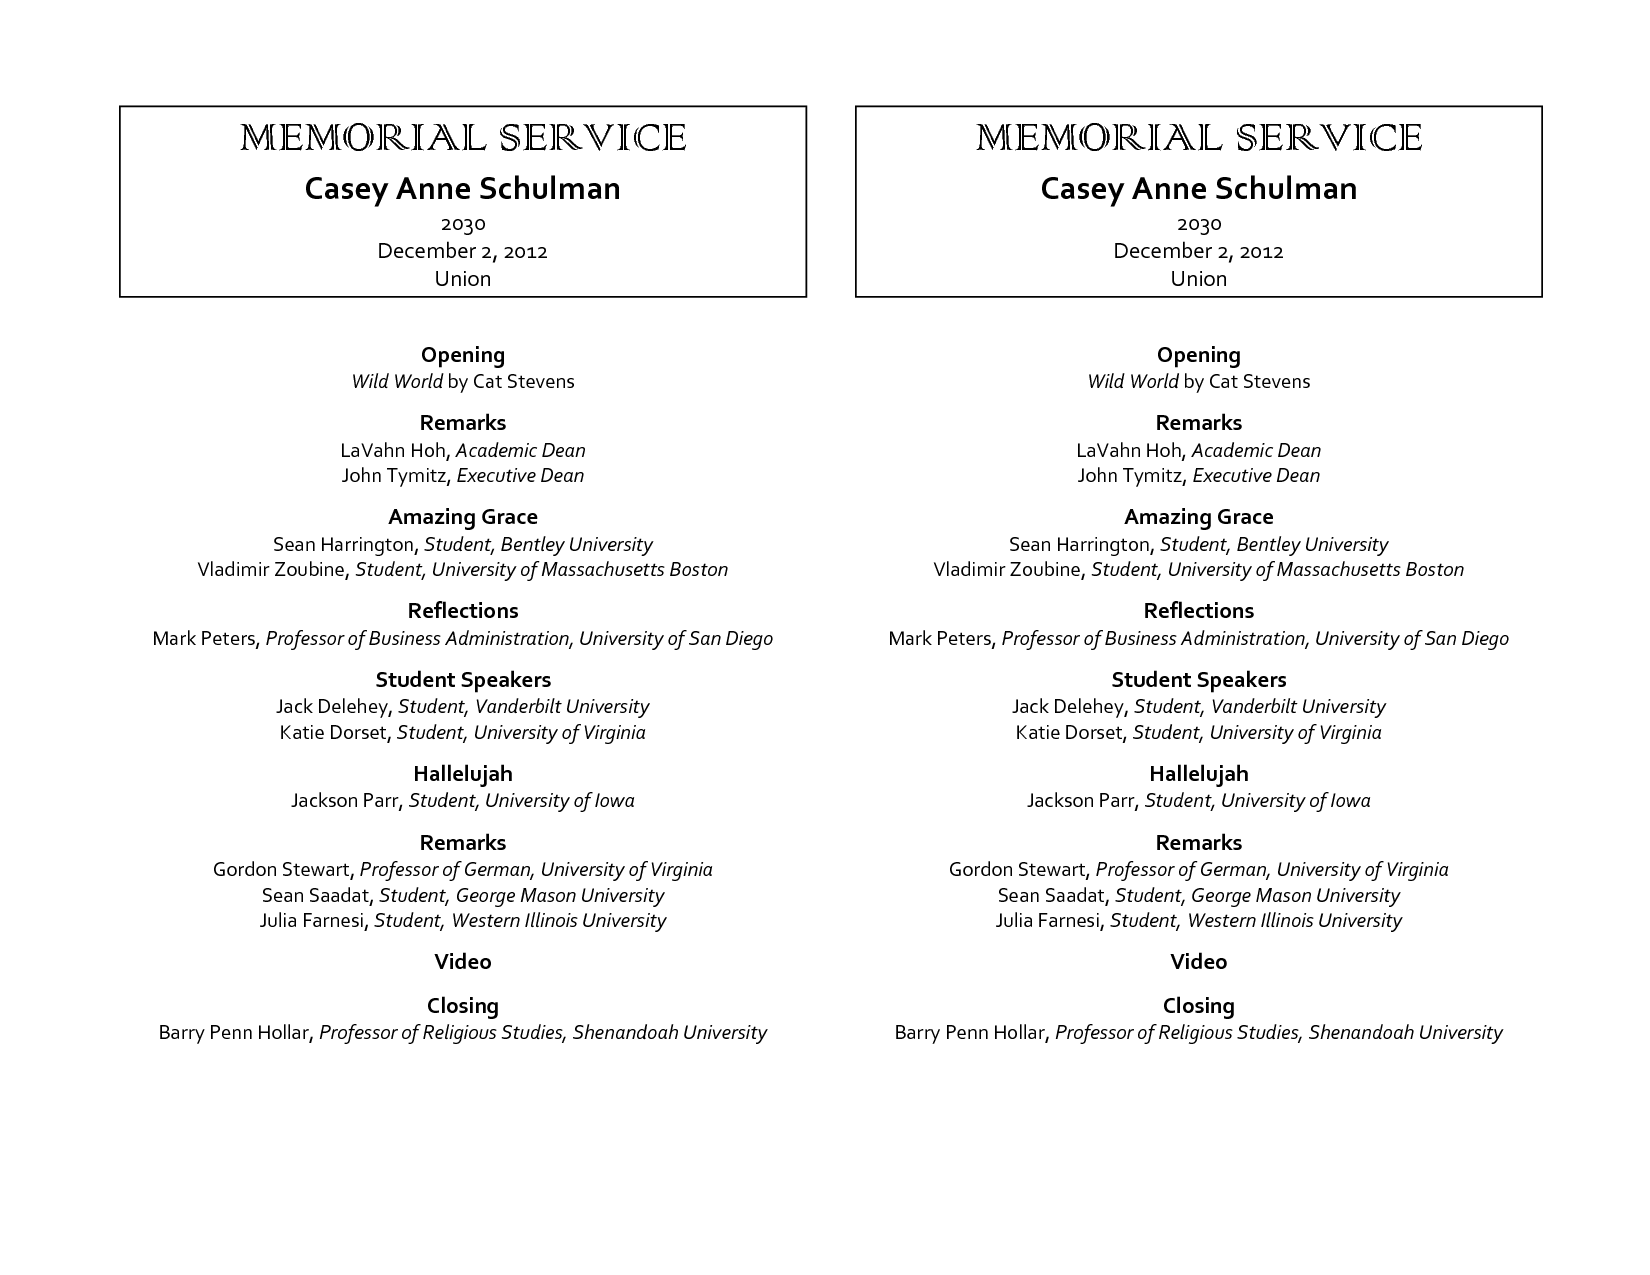 Memorial Service Programs Sample  Onboard Memorial Service